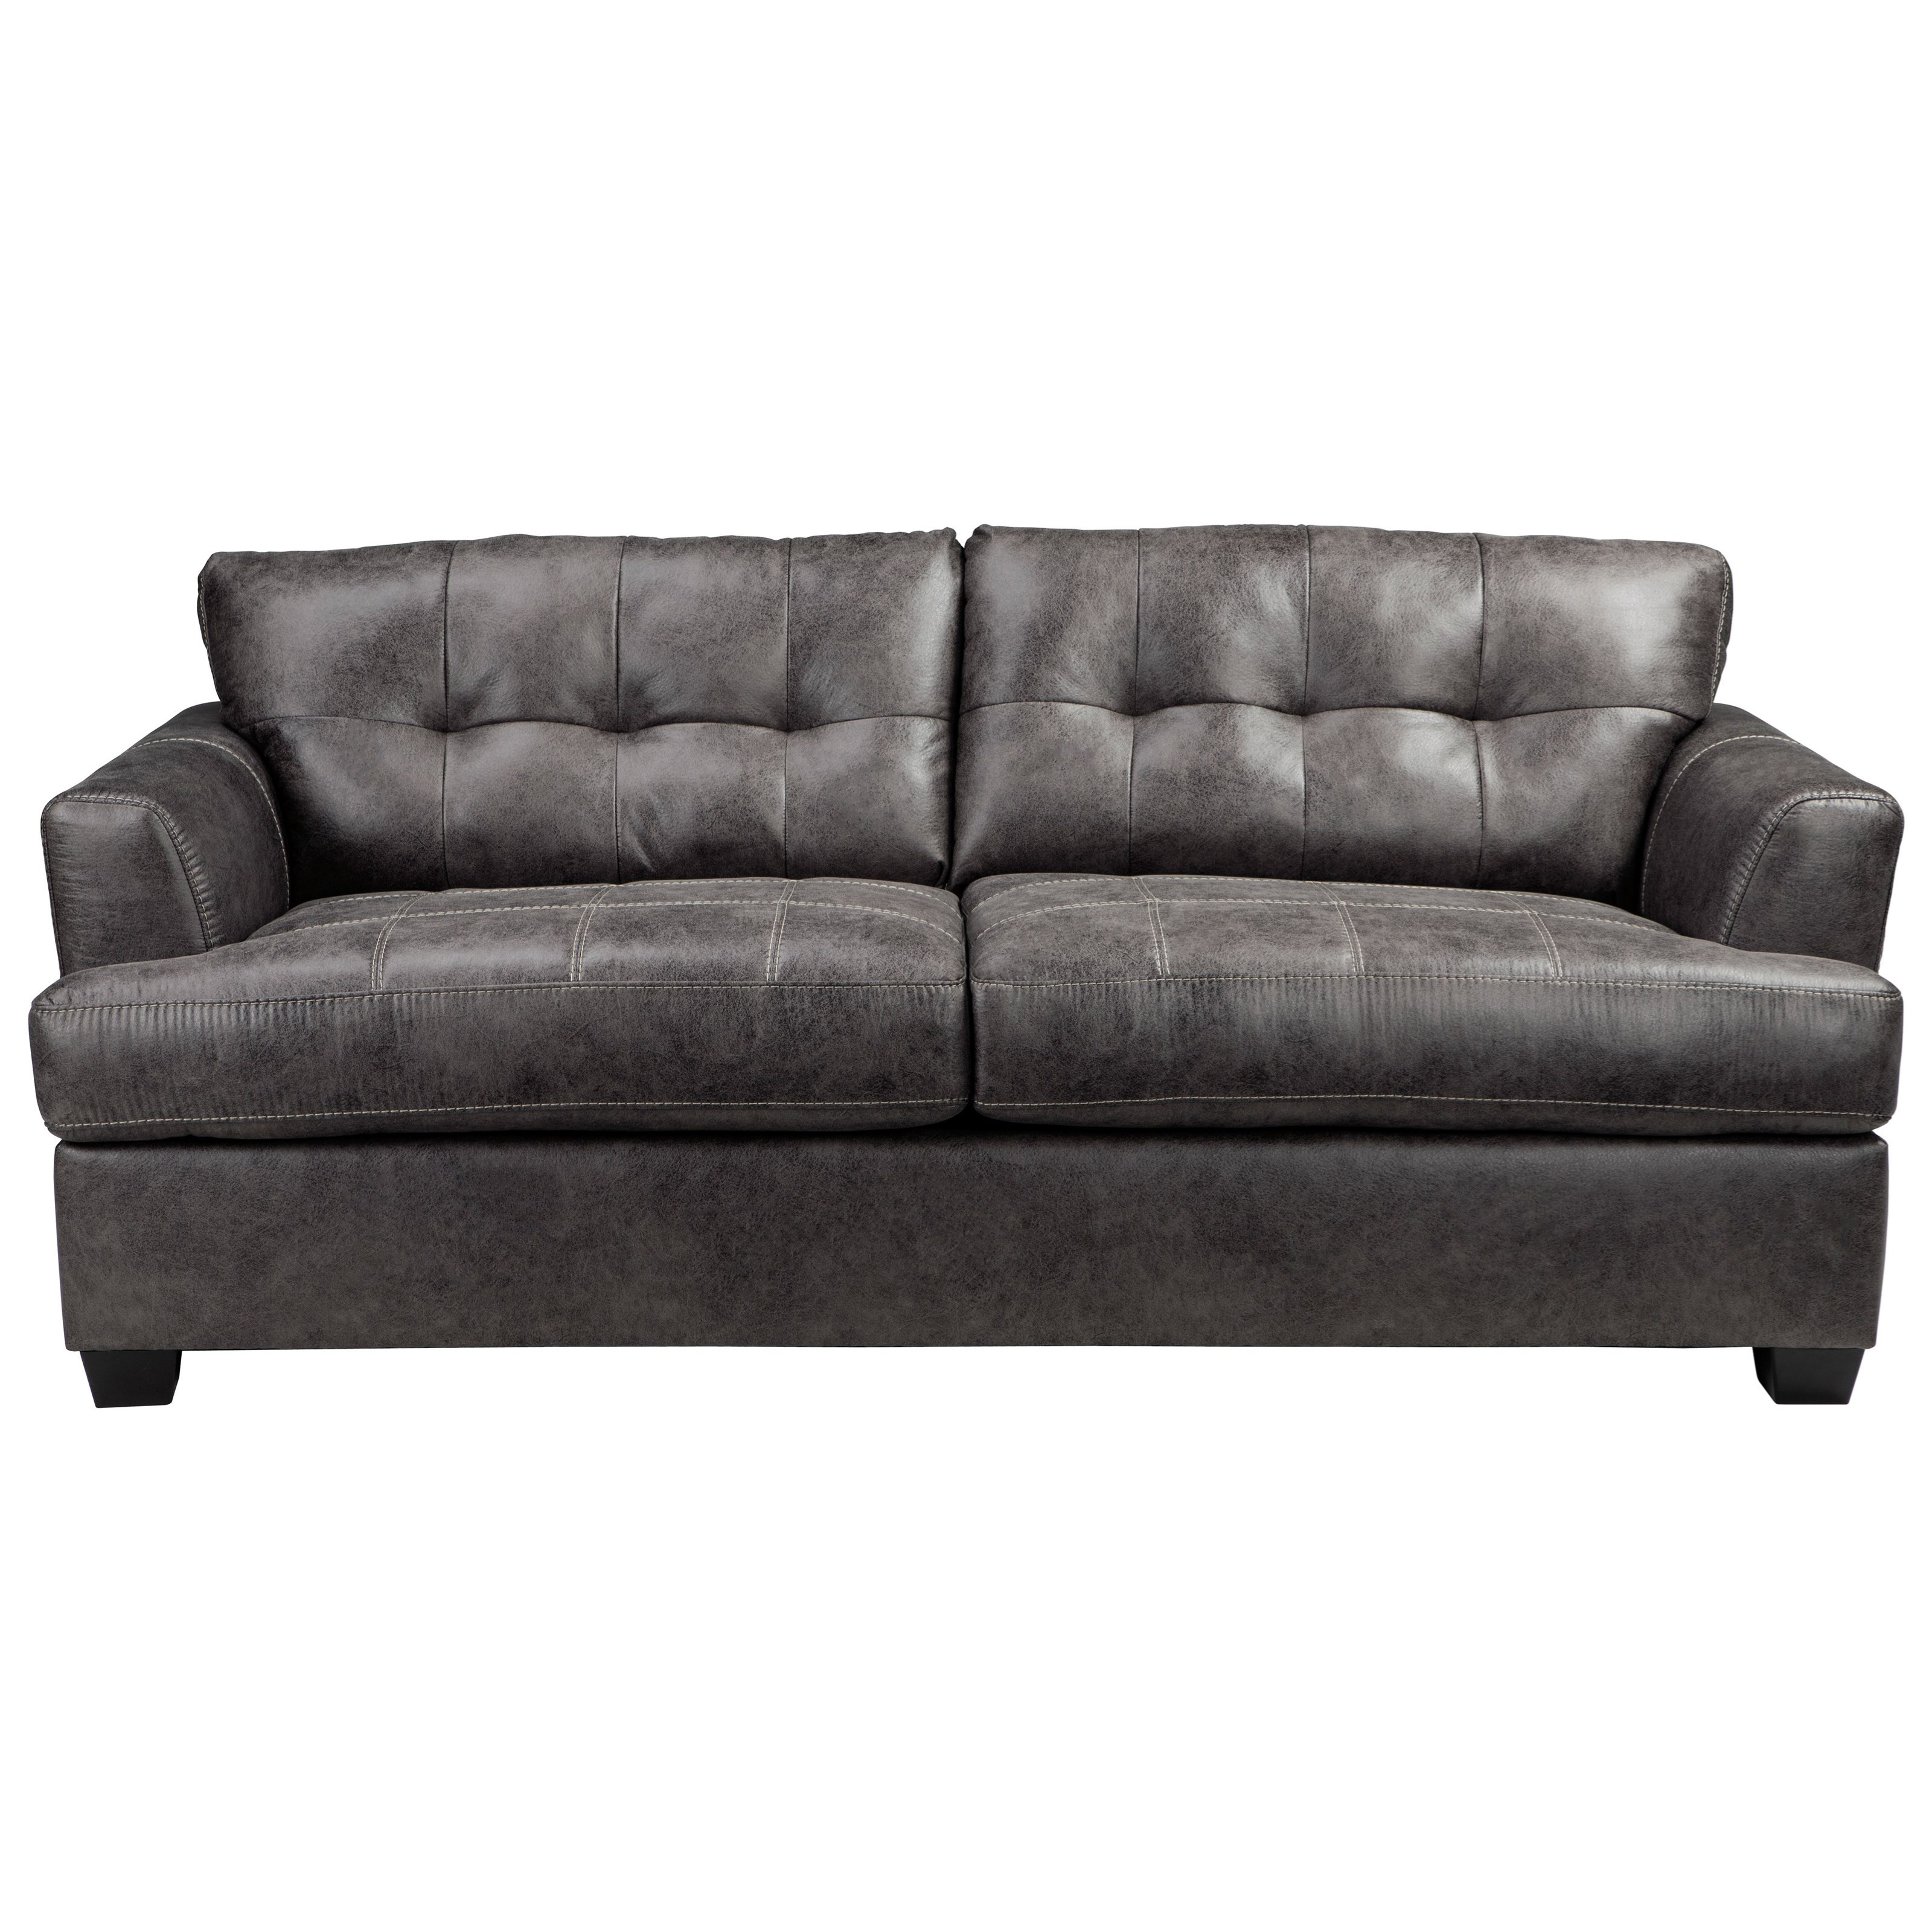 Benchcraft Inmon Sofa - Item Number: 6580738